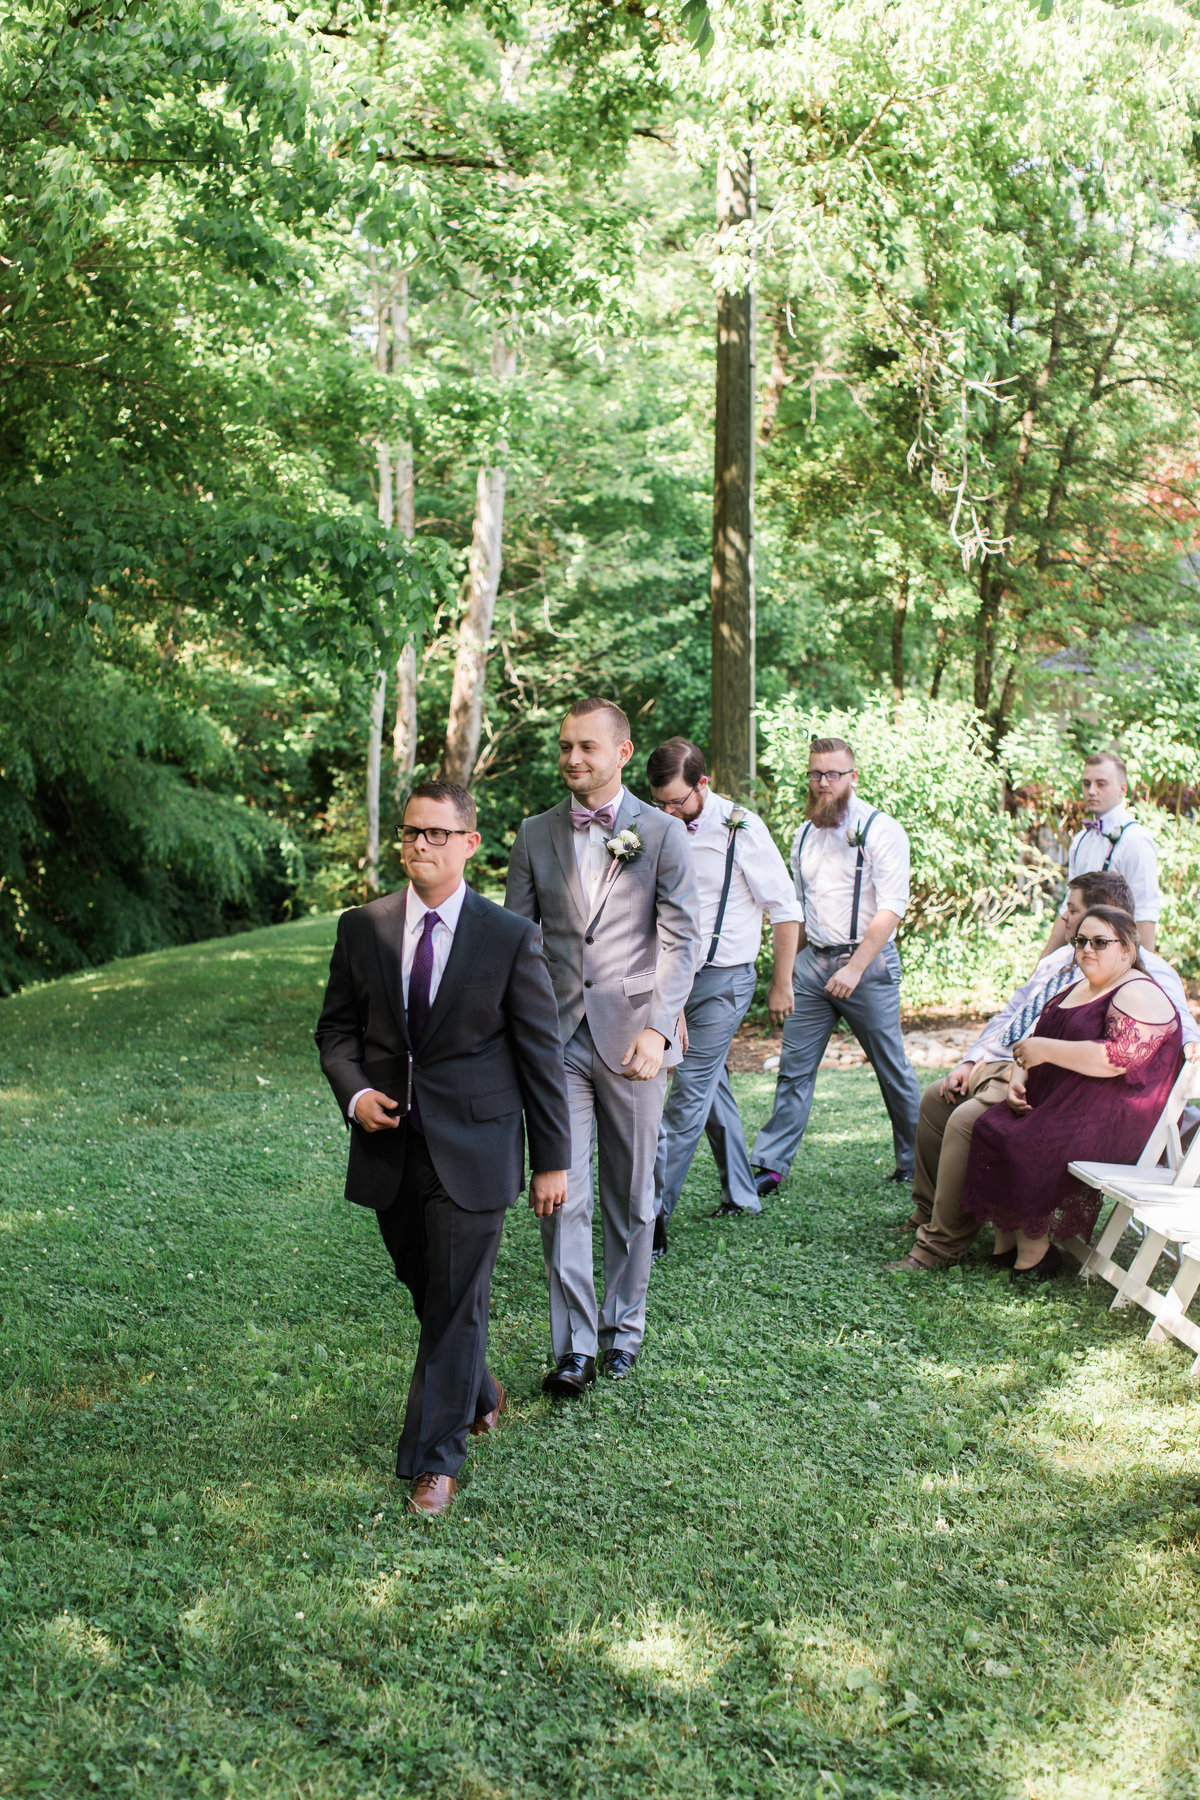 Danielle-Defayette-Photography-Daras-Garden-Knoxville-Wedding-179